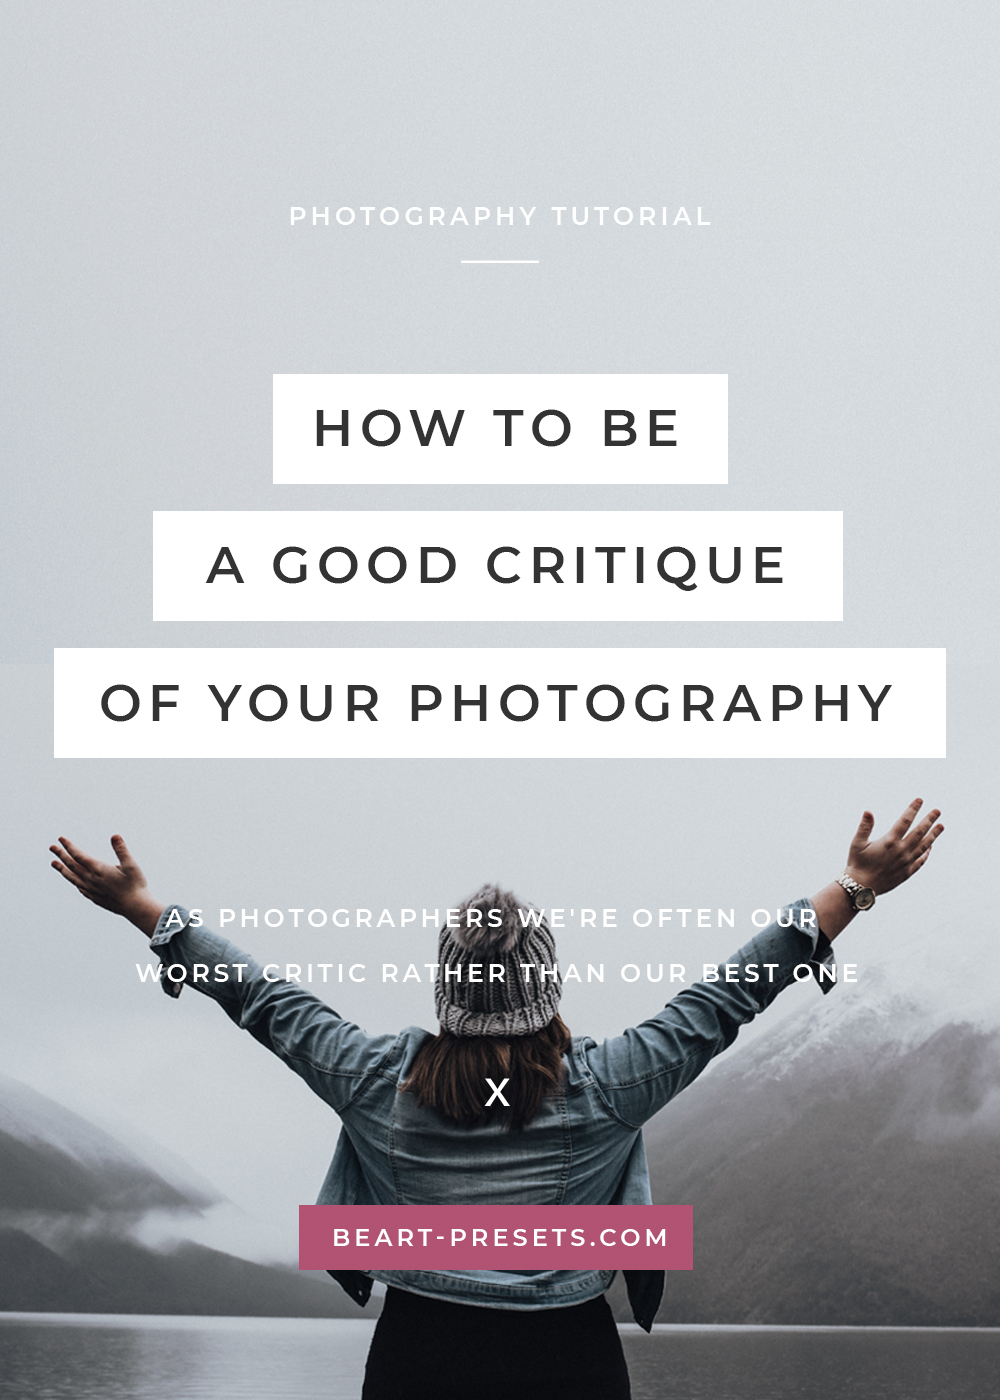 HOW TO BE A GOOD CRITIQUE OF YOUR PHOTOS